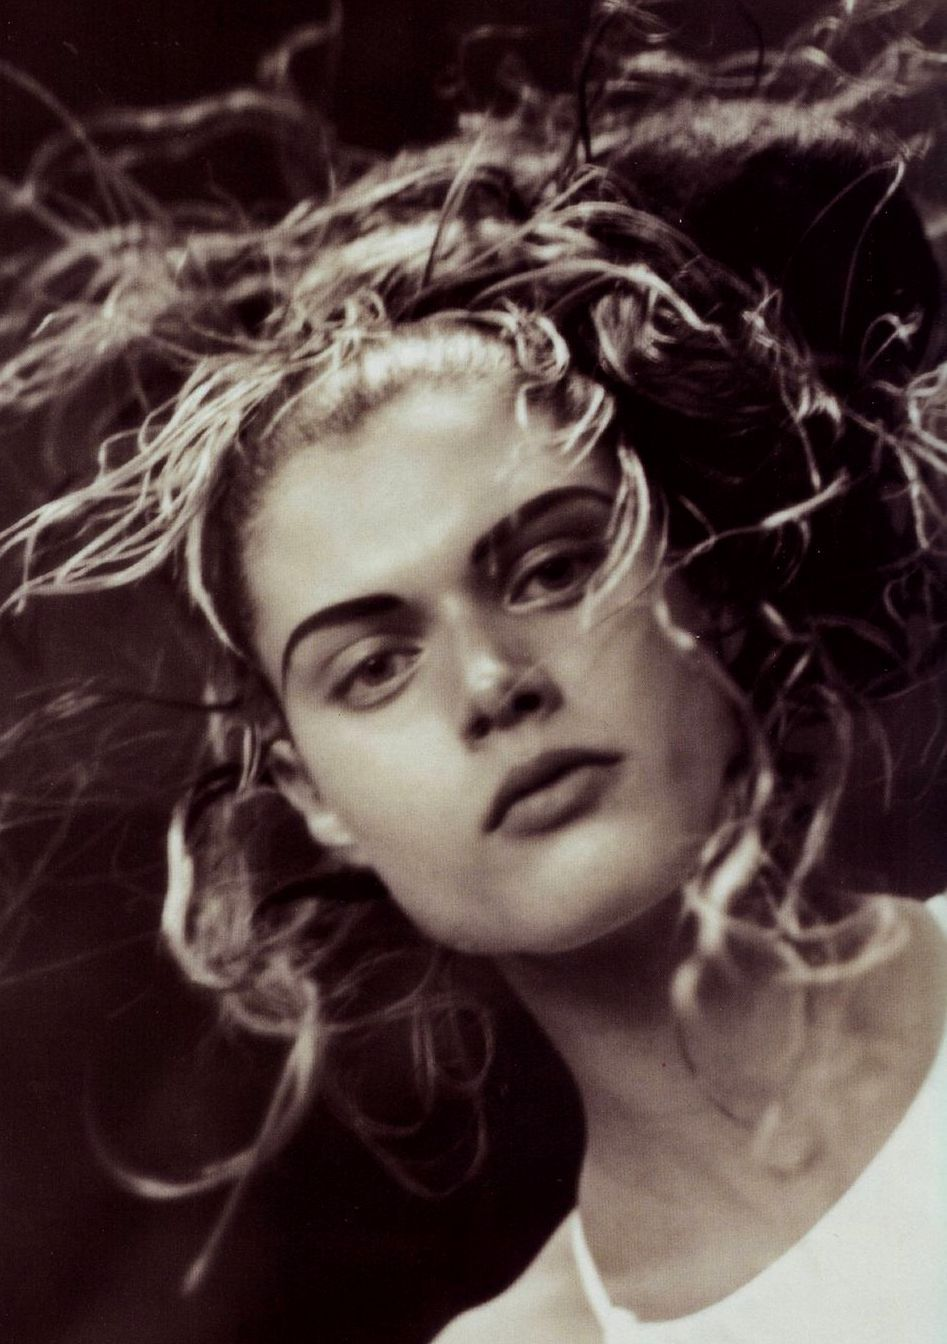 Pictures of Italian fashion photographer Paolo Roversi 56